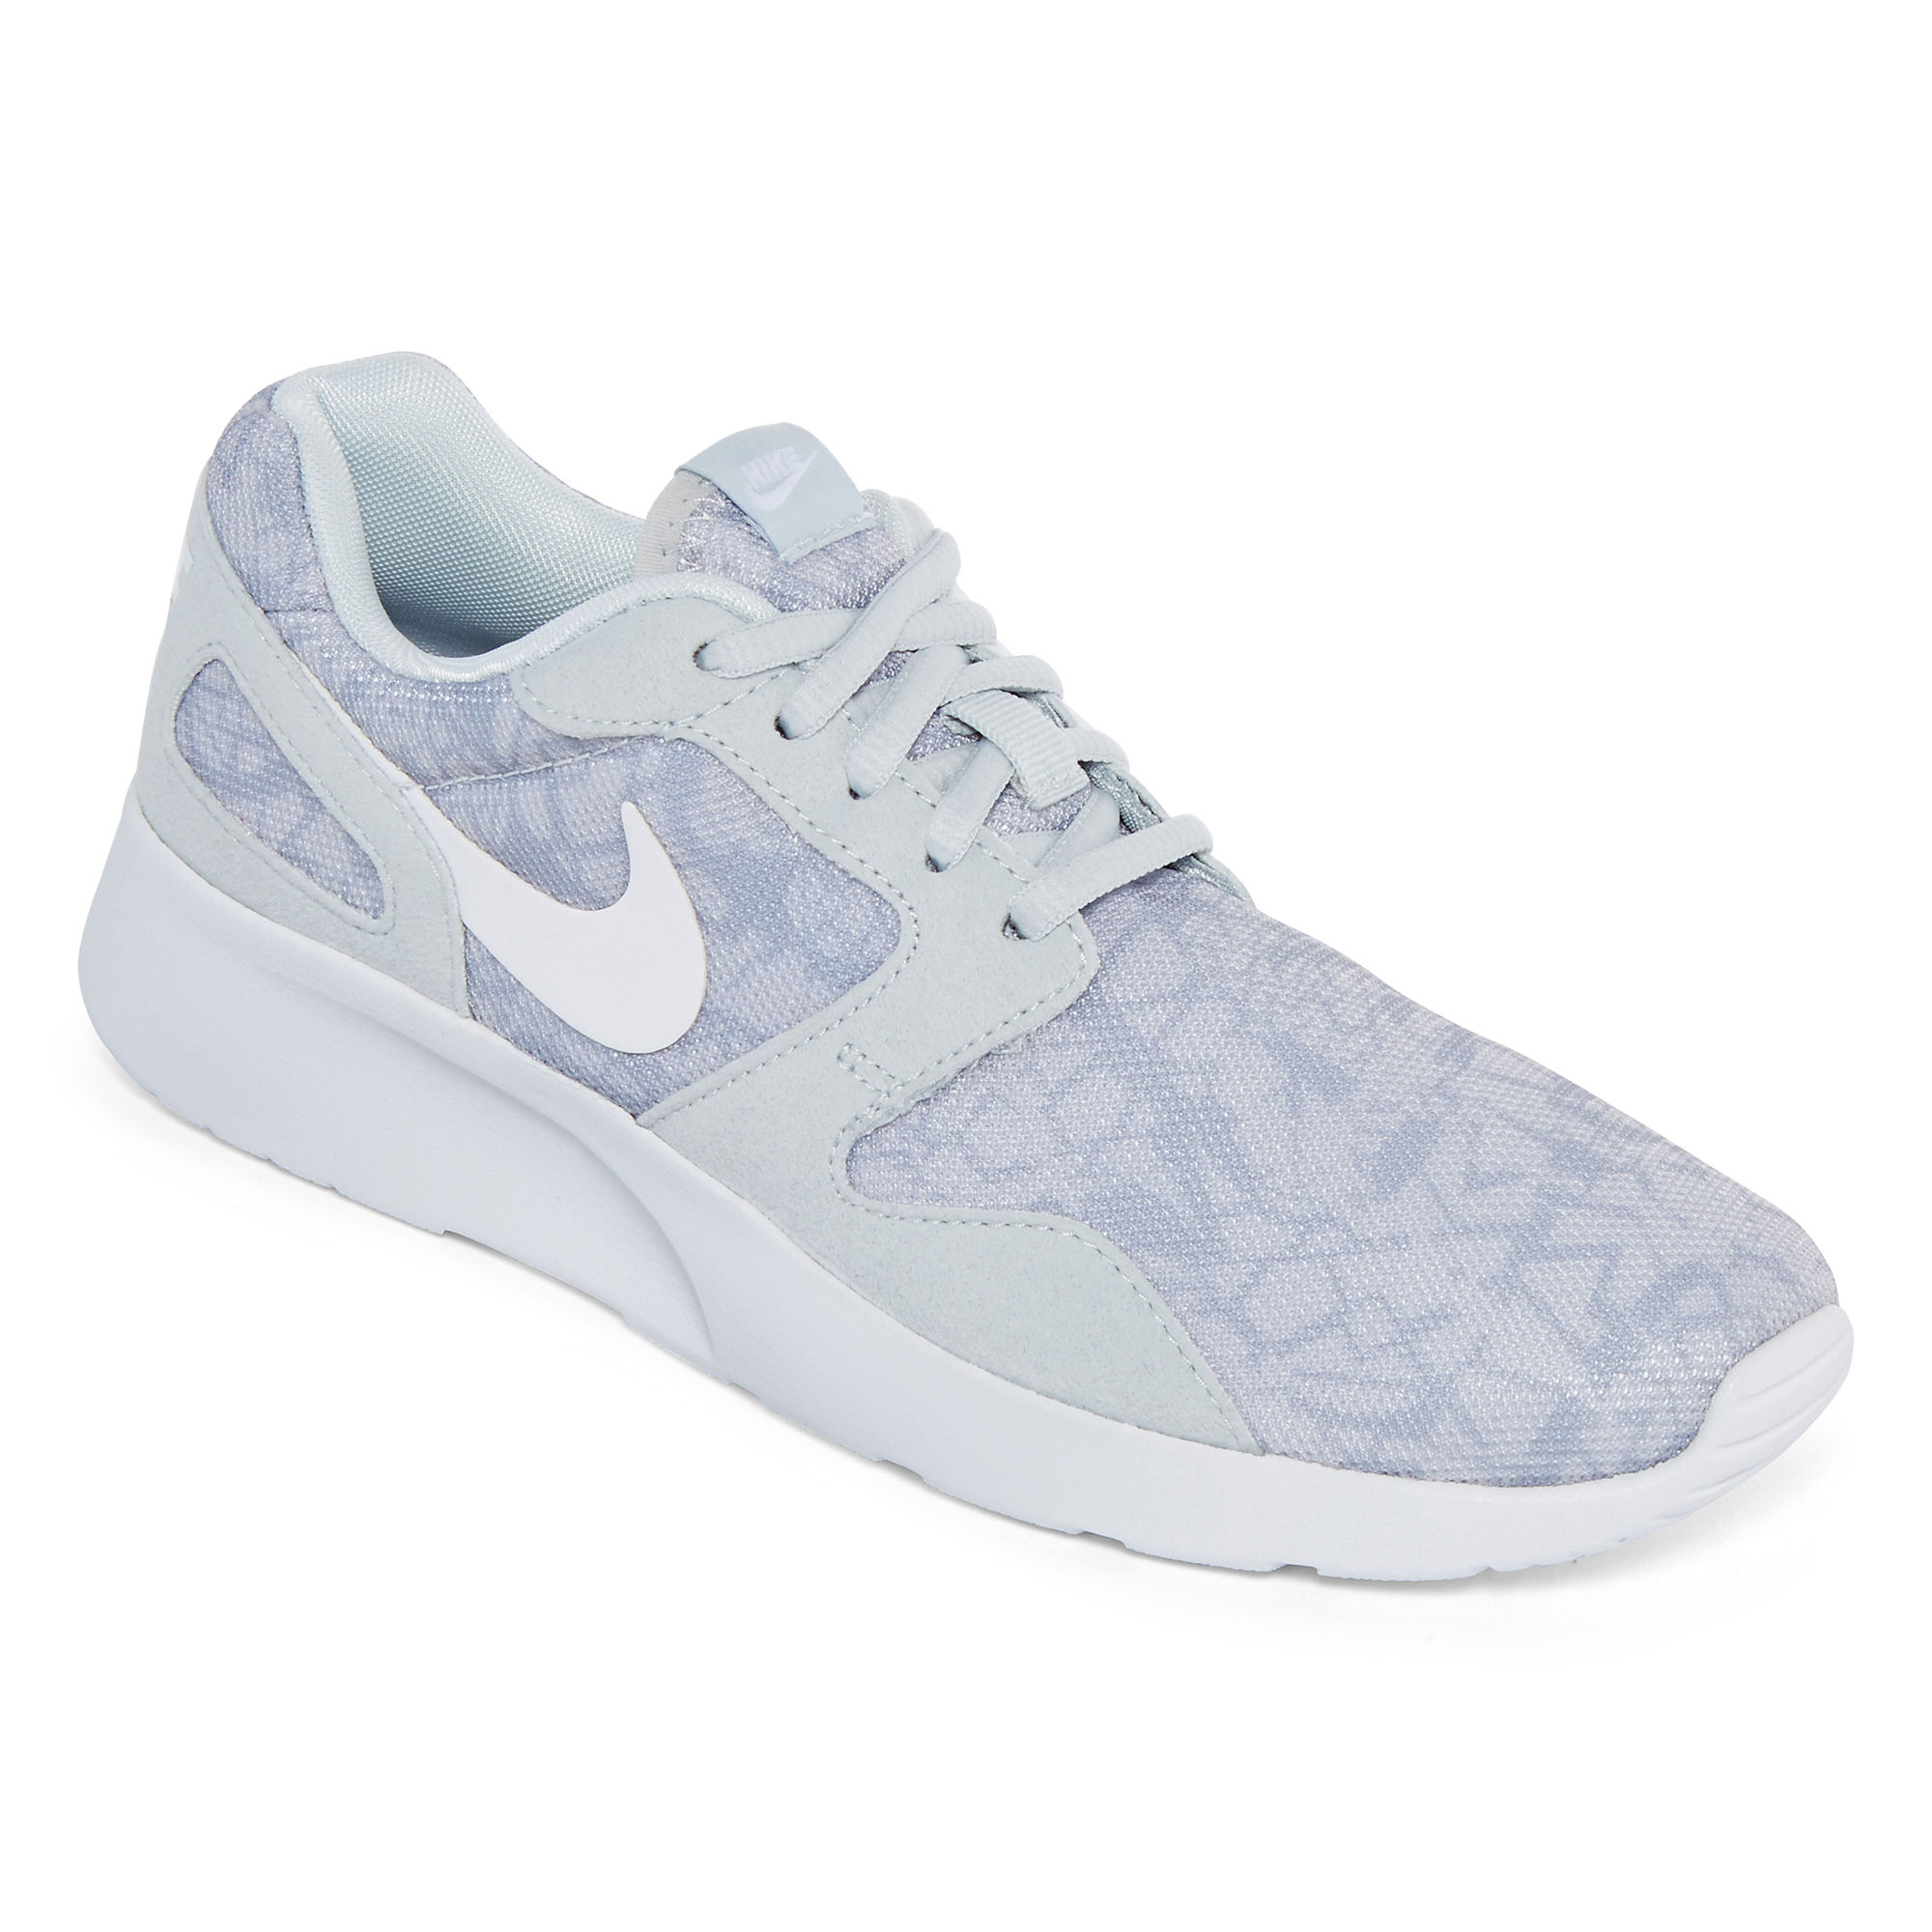 nike kaishi run all white nike kaishi run all